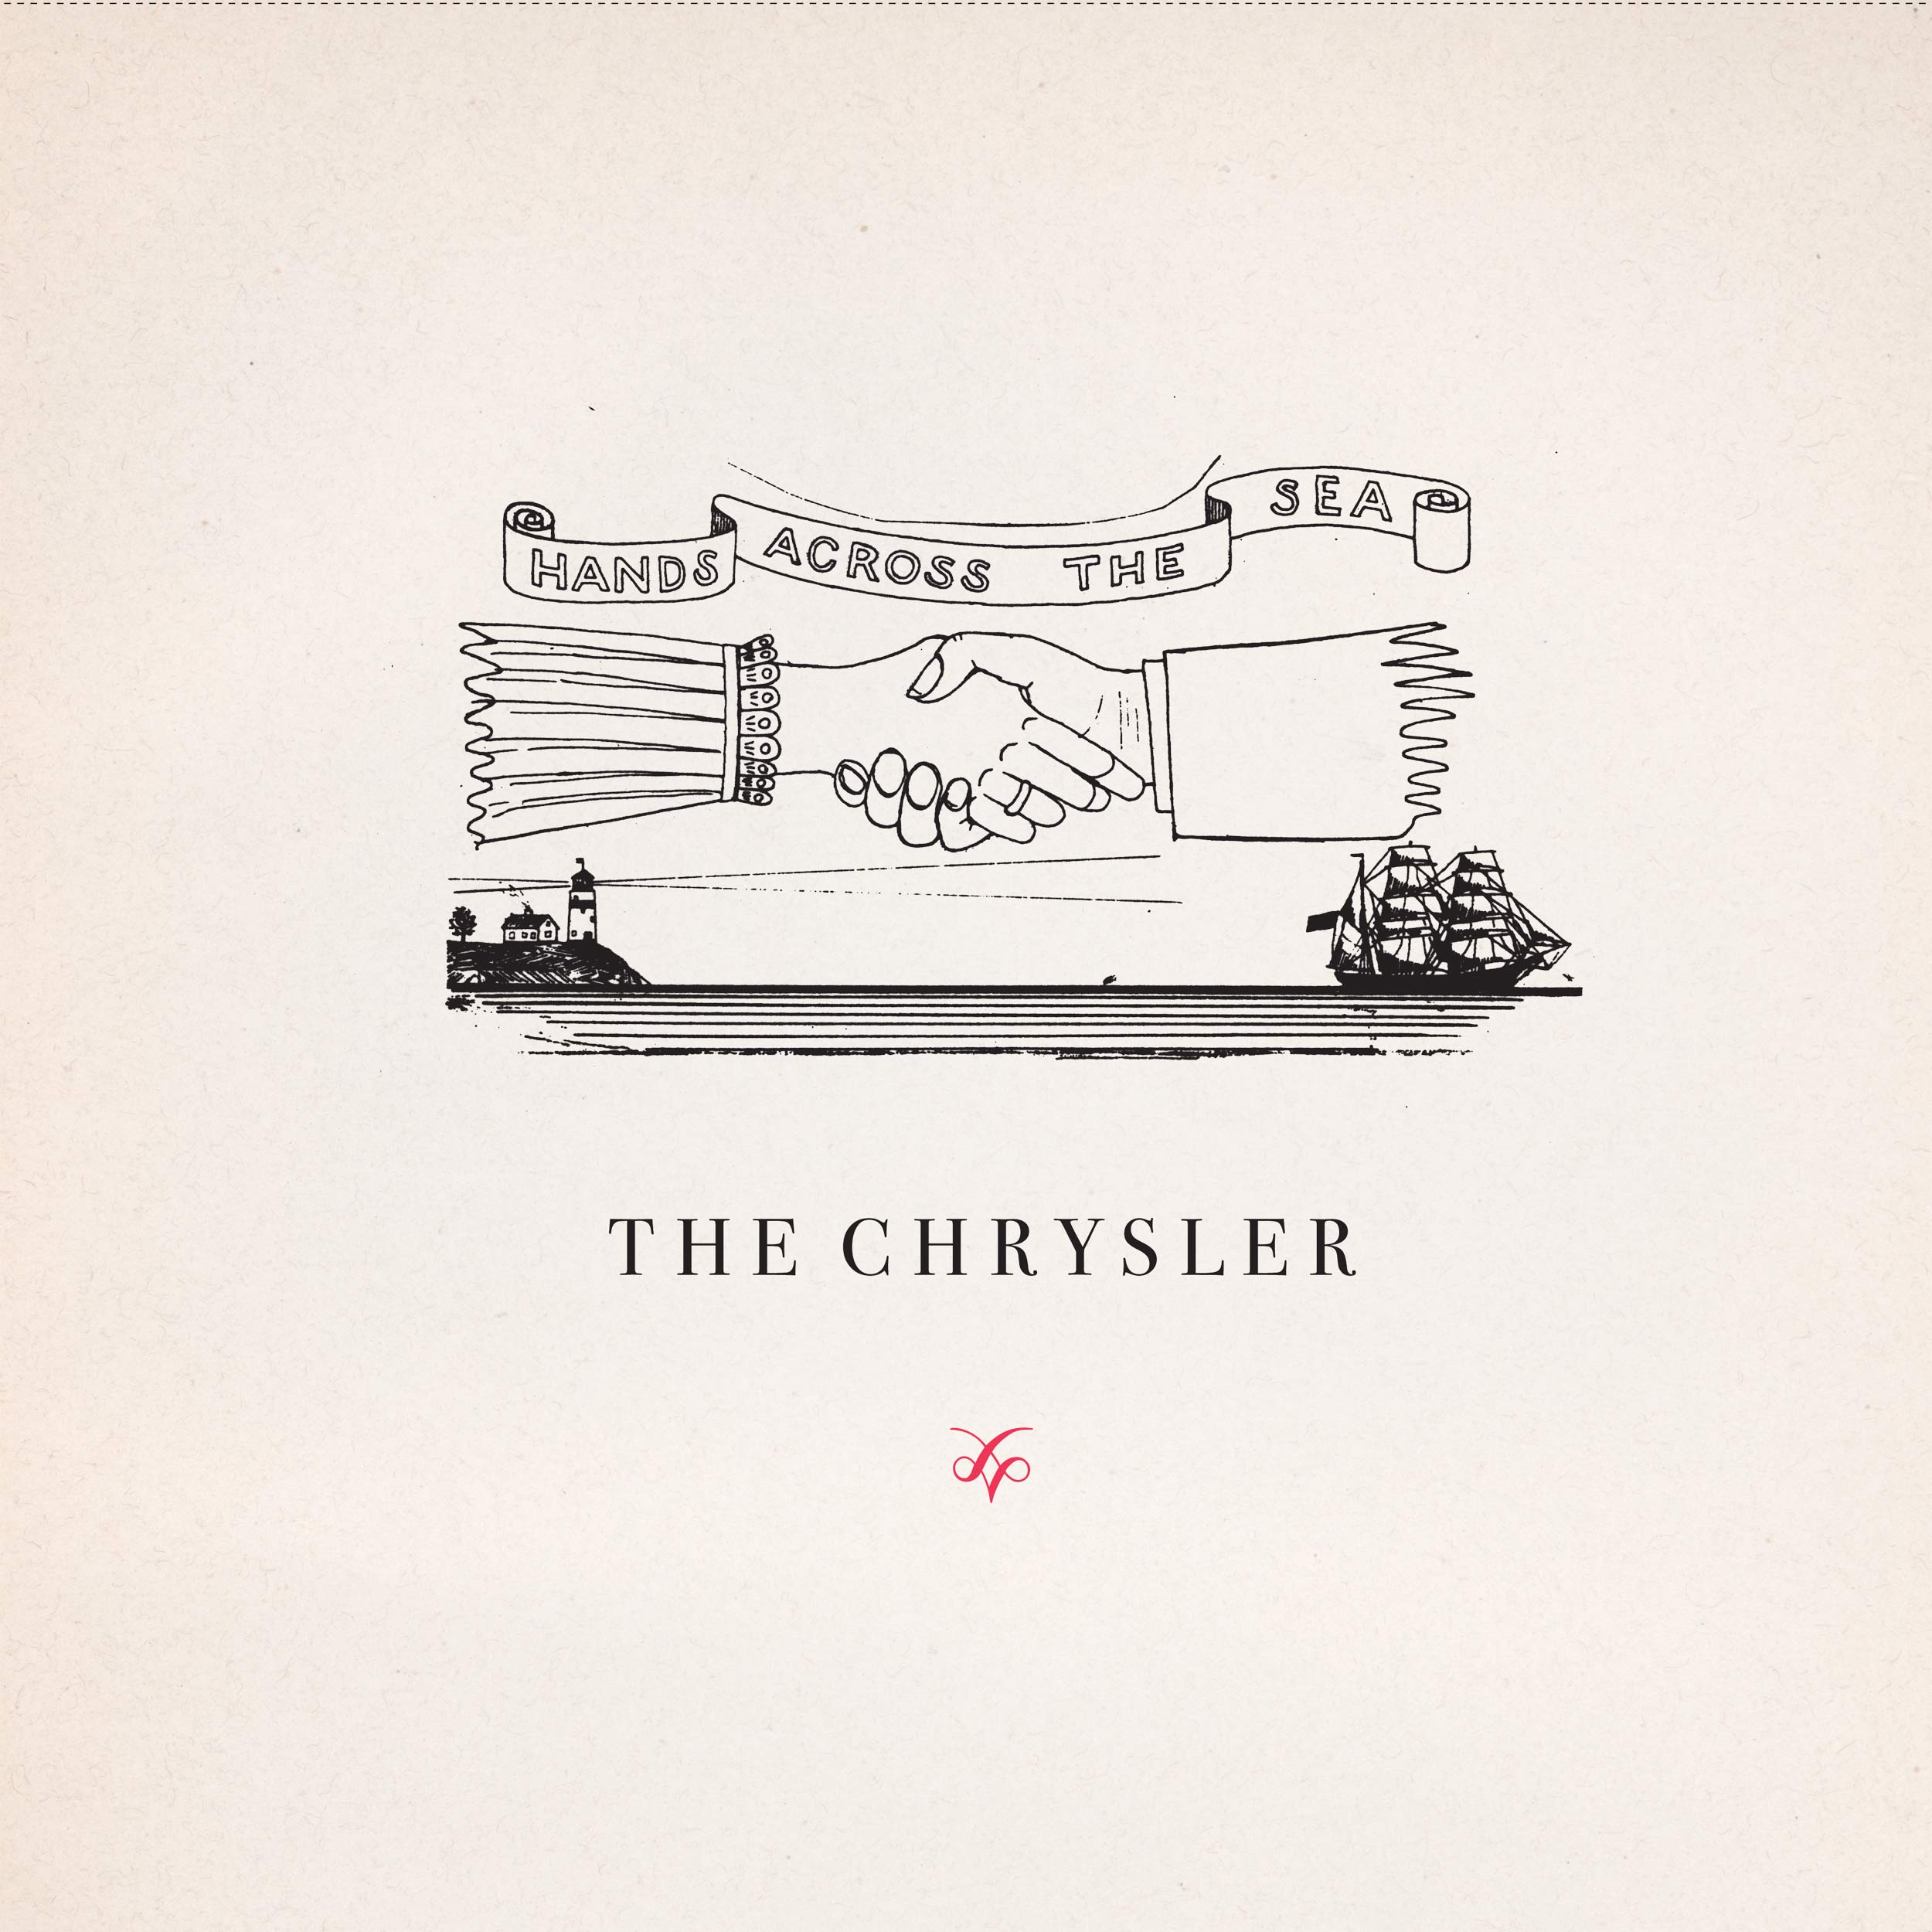 the chrysler - hands across the sea cover